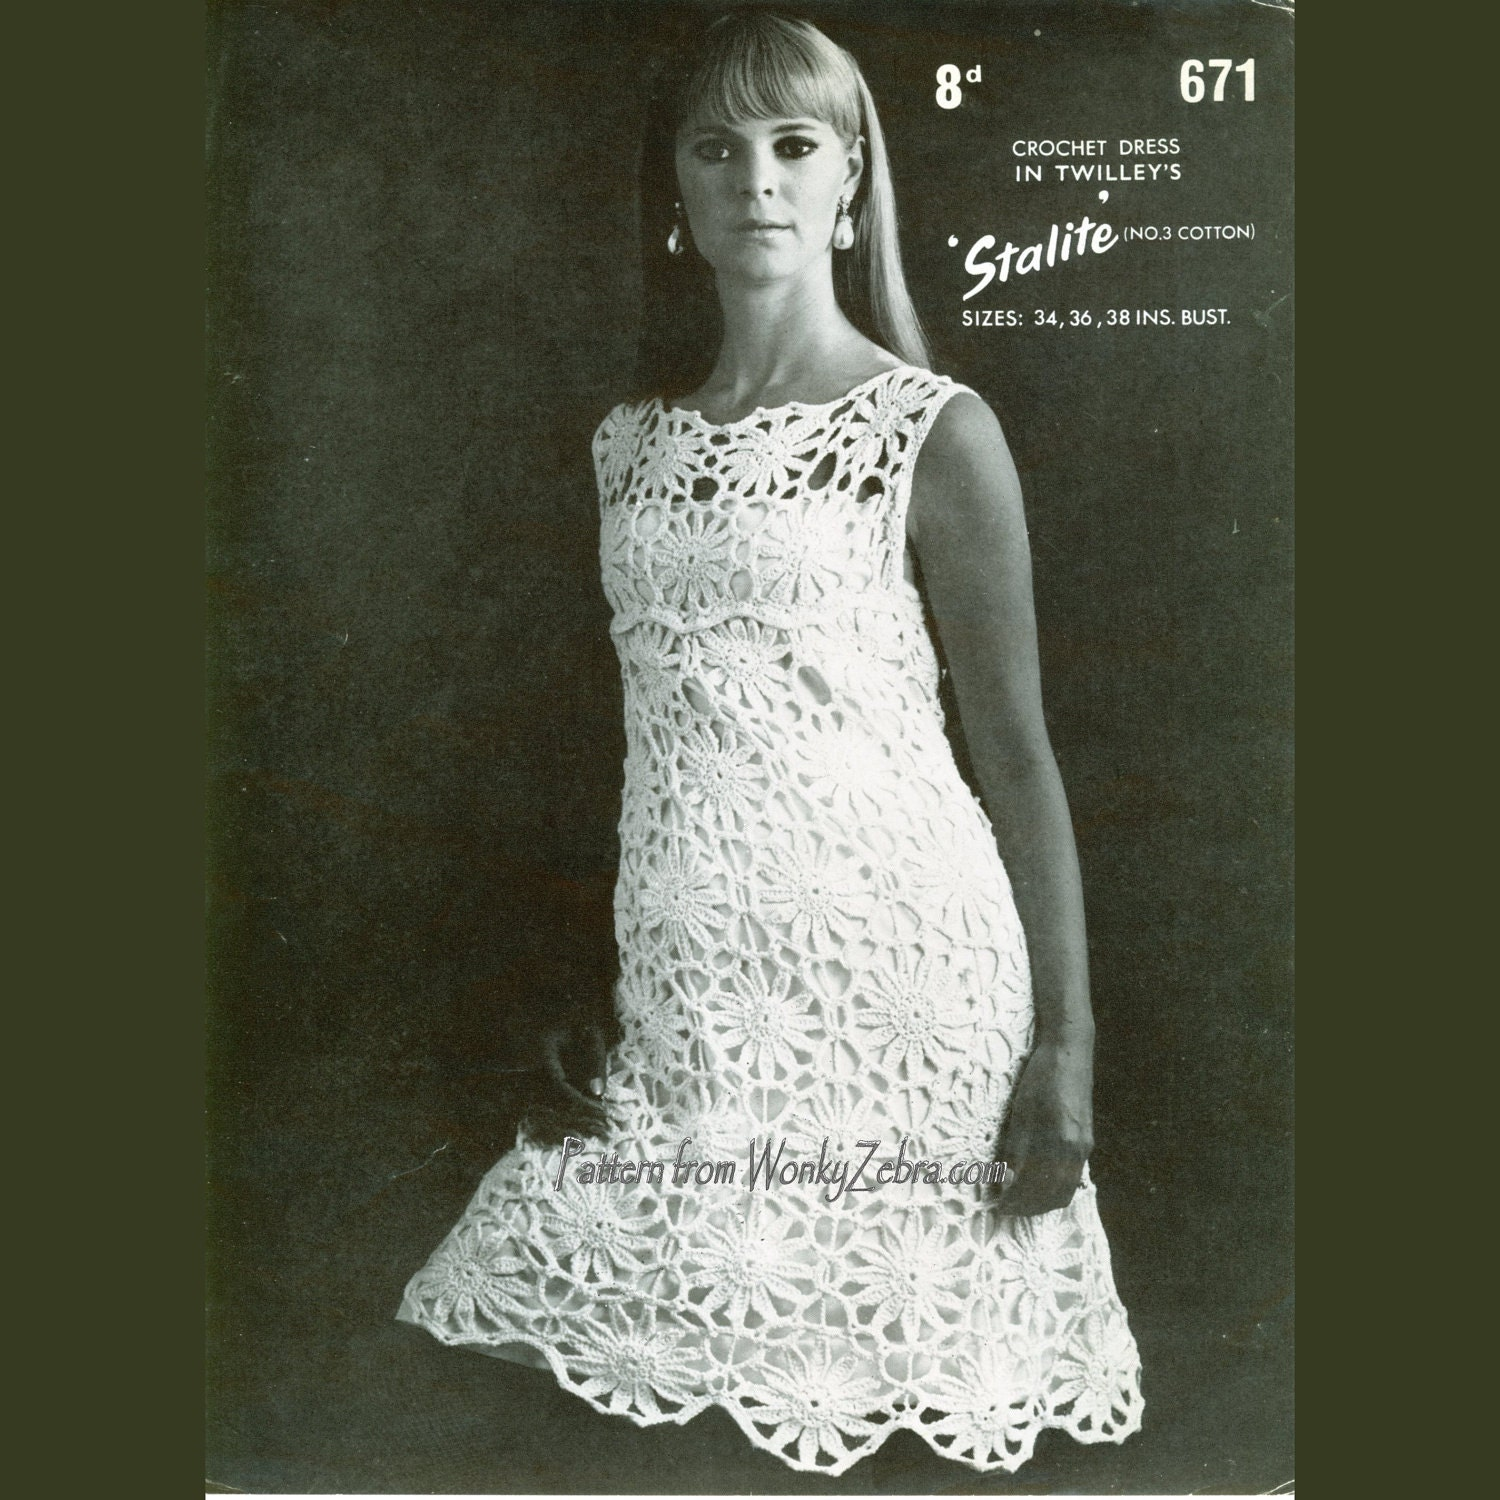 Crochet Dress : Crochet Dress Pattern PDF 059 Vintage Shift Dress by wonkyzebra